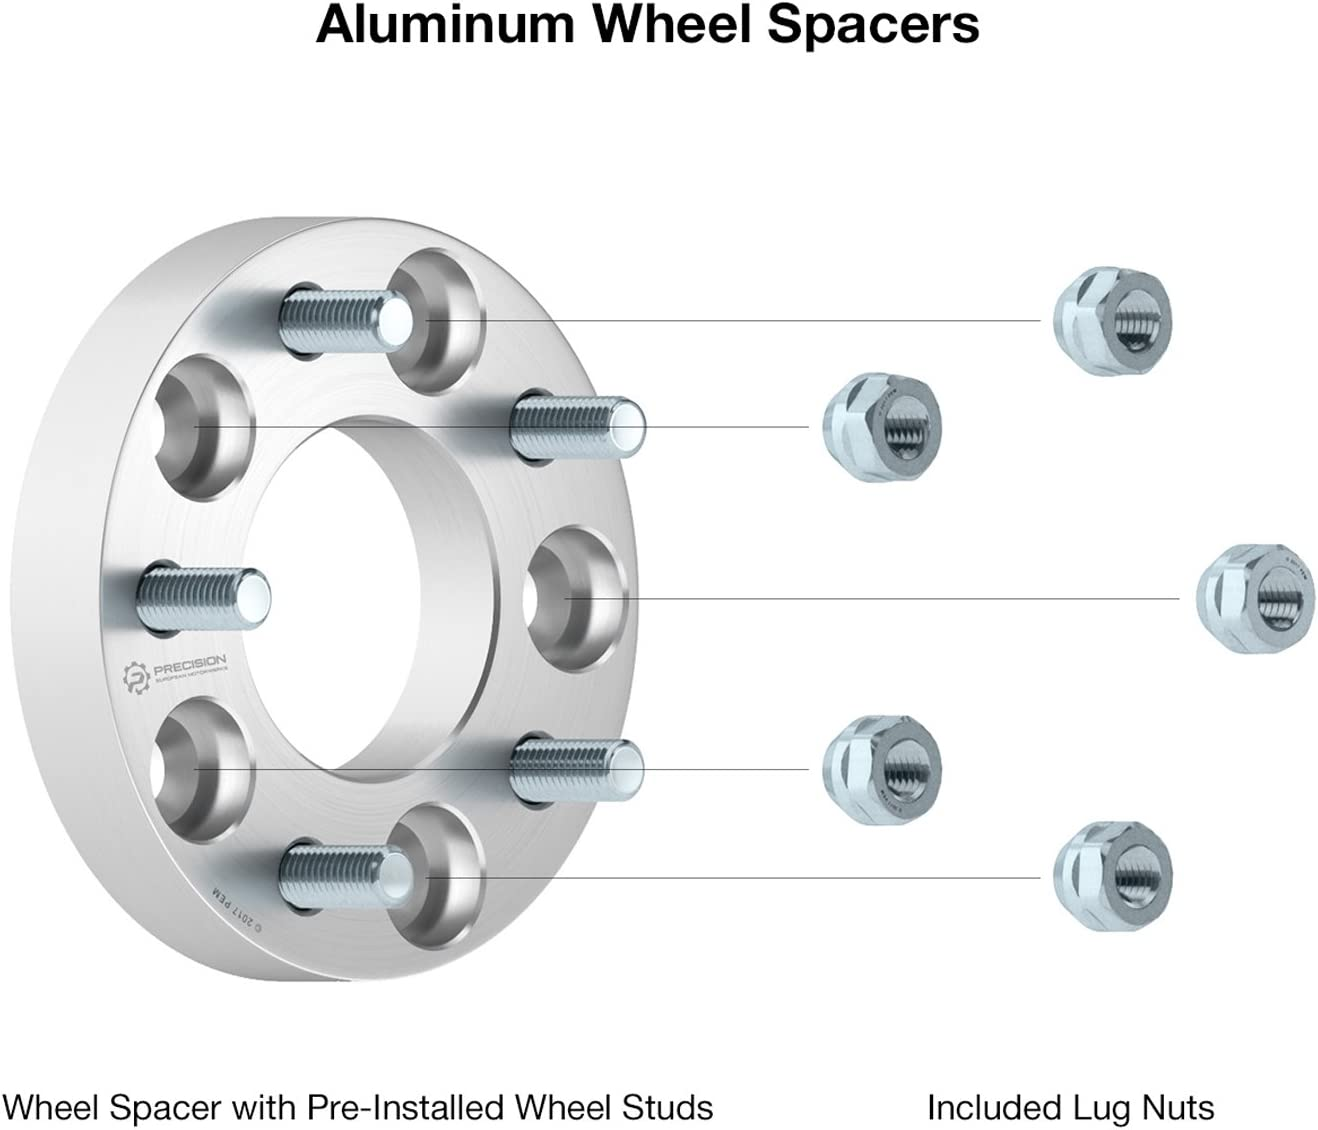 38mm RockTrix for Precision European 5x127 to 5x114.3 2pc 1.5 Thick Wheel Adapters Spacers 5x5 to 5x4.5 with 1//2x20 Studs//Nuts for many GMC Buick Chevy Changes Bolt Pattern